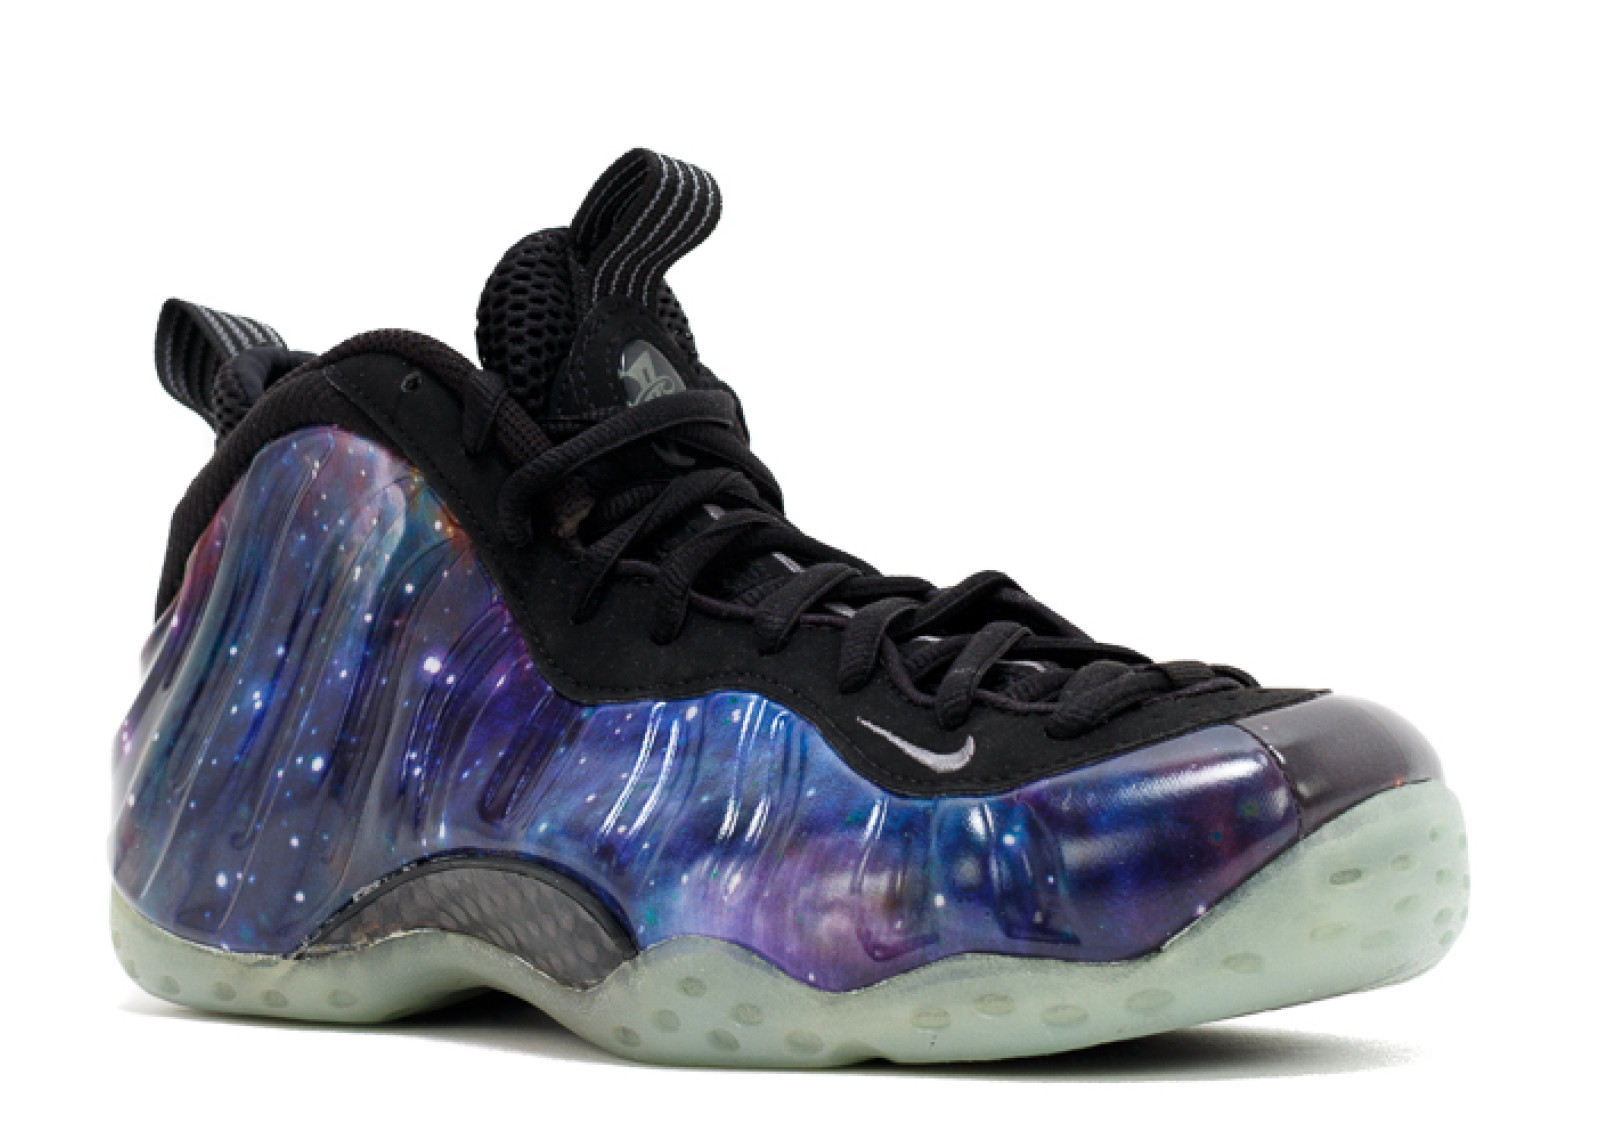 29b8661271e ... where can i buy nike air foamposite one nrg galaxy 521286 800 walmart  e5067 0beb2